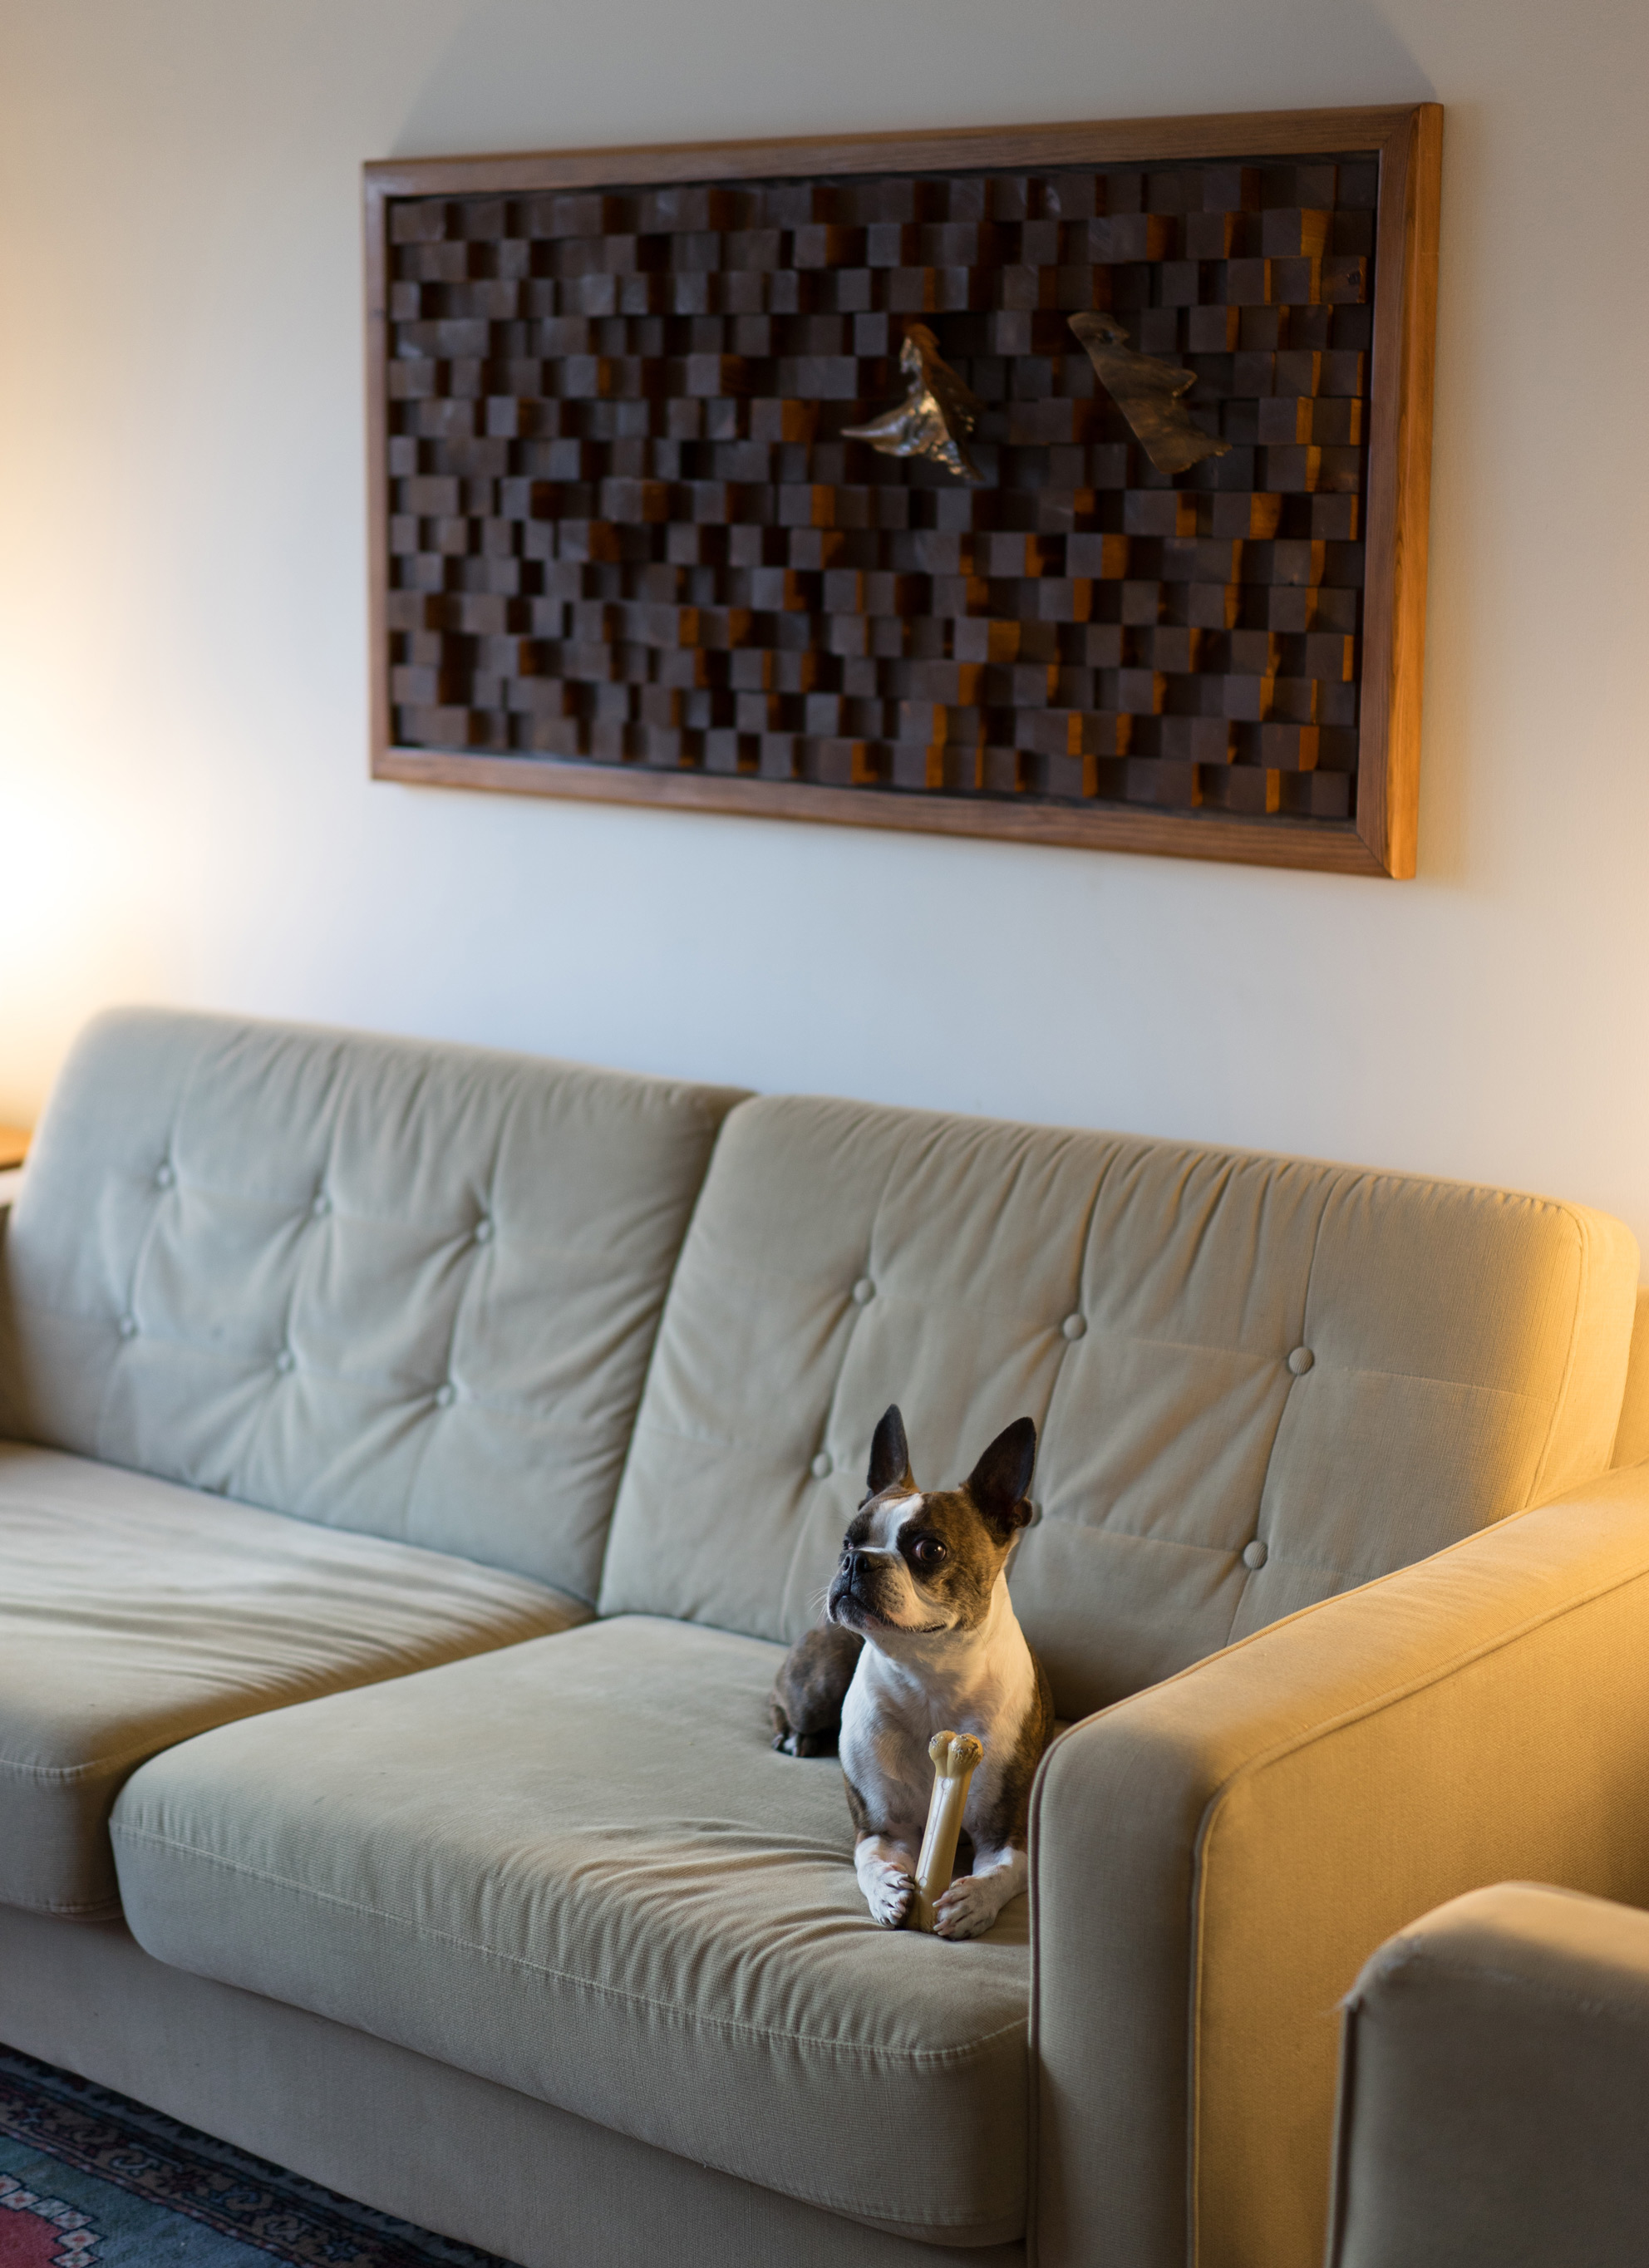 An acoustic sound diffuser reduces echo in a space and improves comfort. Look how comfortable Pasquale is.